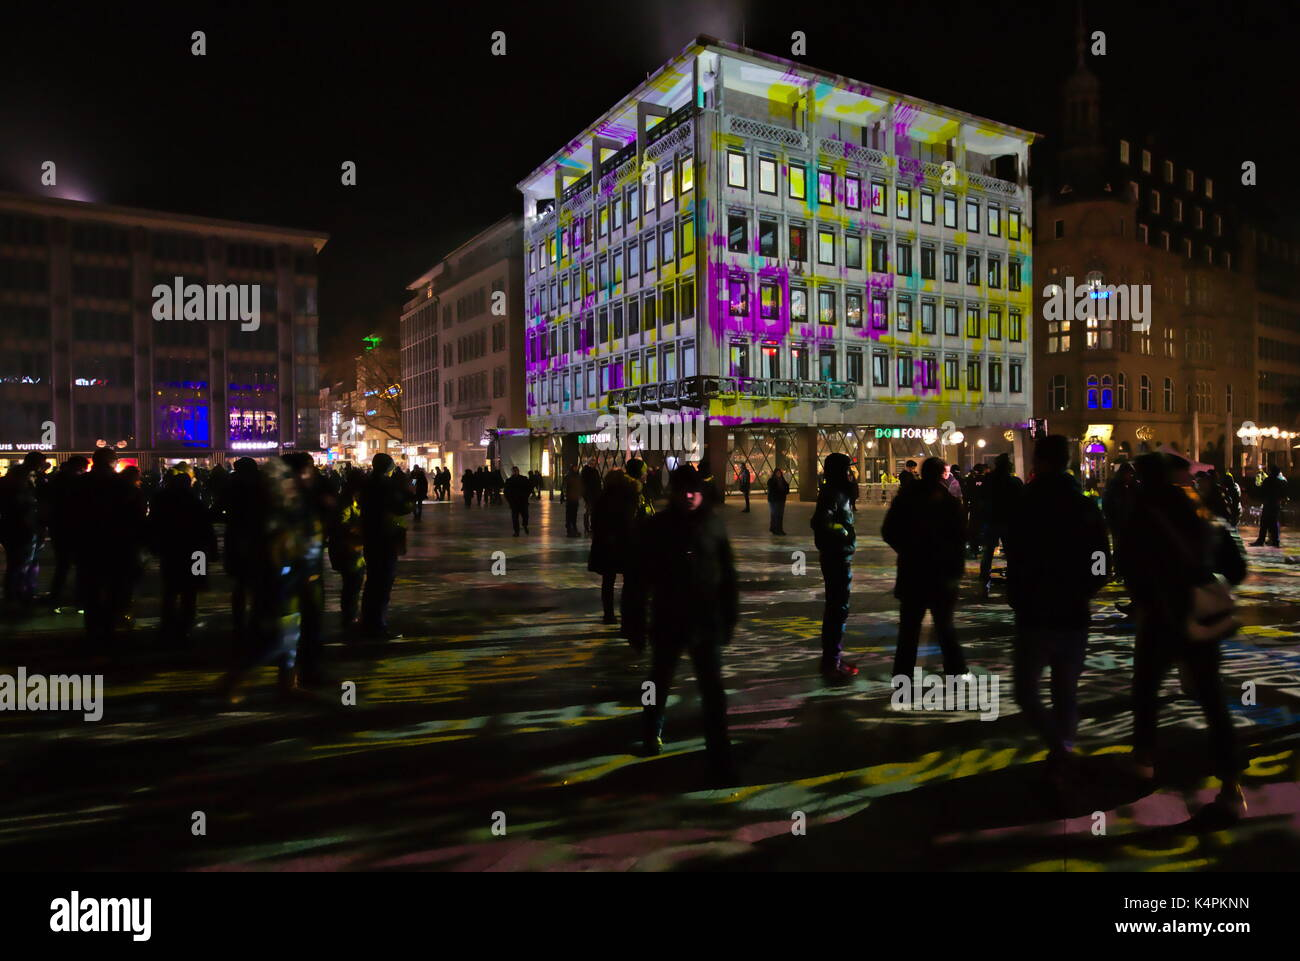 Light installation around the cologne cathedral, words and facades - Stock Image